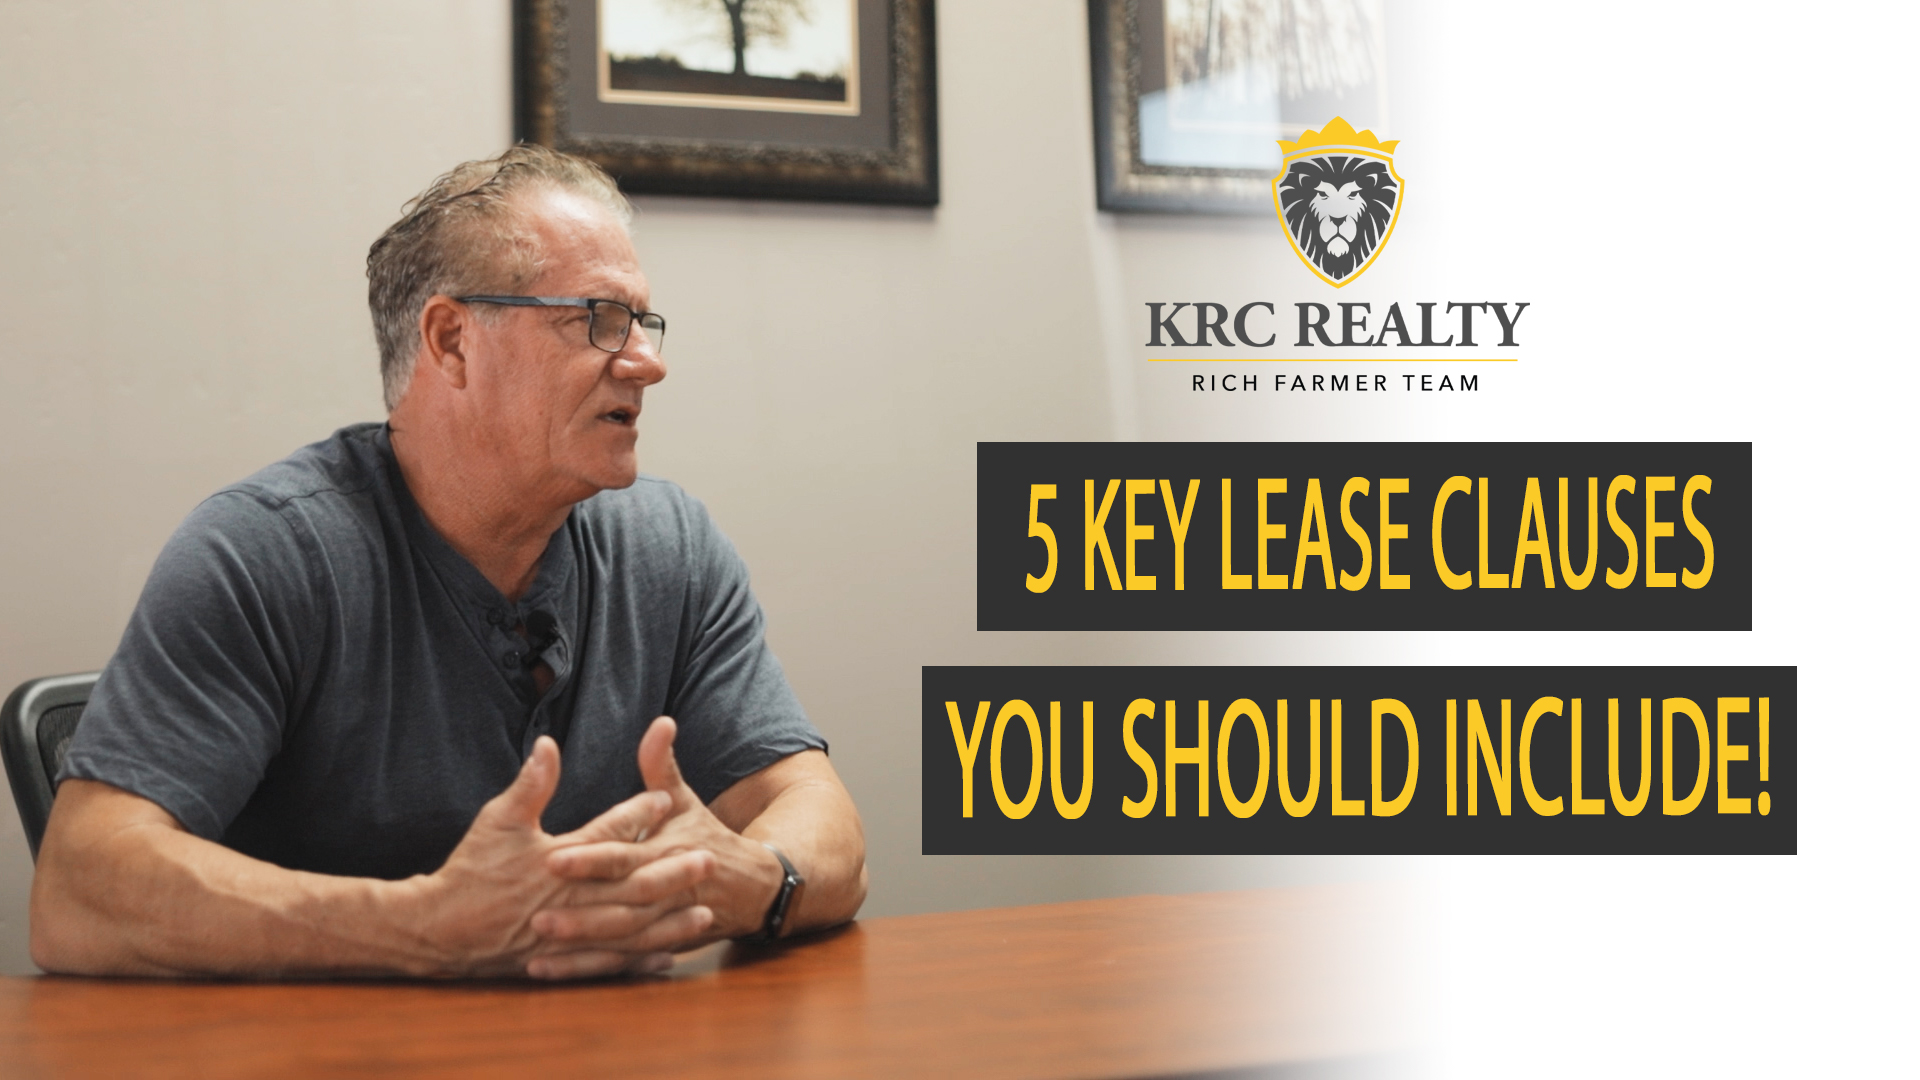 5 Key Lease Clauses Every Landlord Should Include In The Lease!